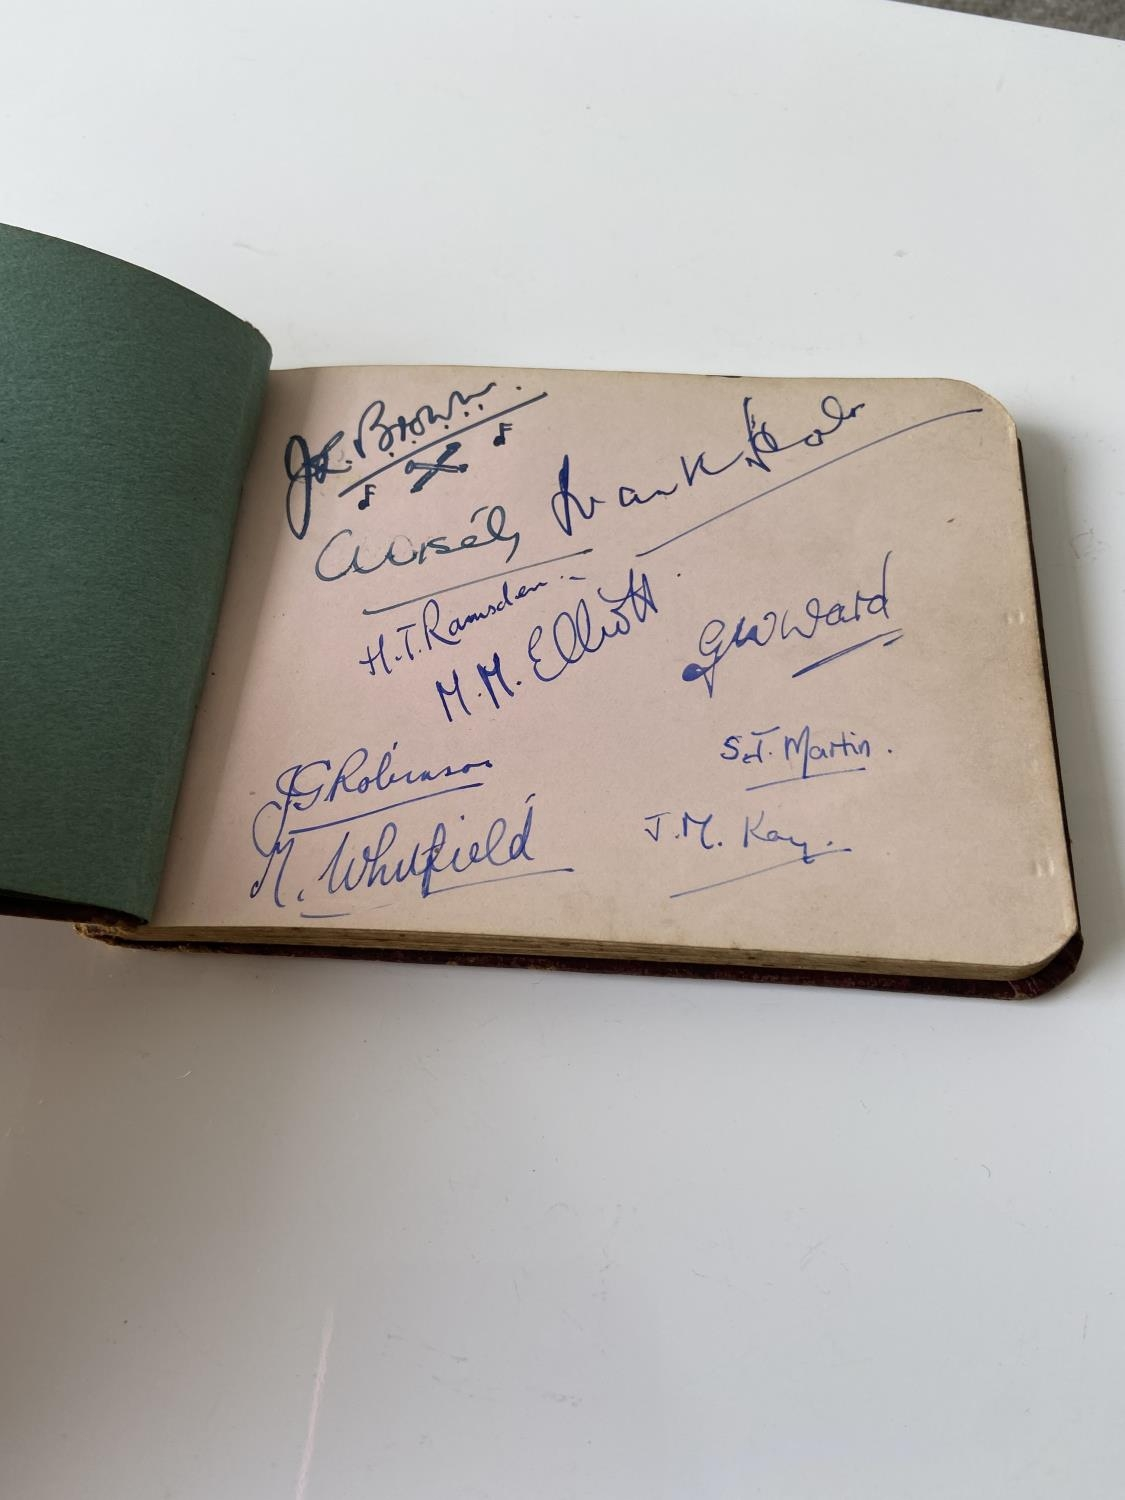 An old autograph album containing various poems, sayings & doodles - Image 4 of 18